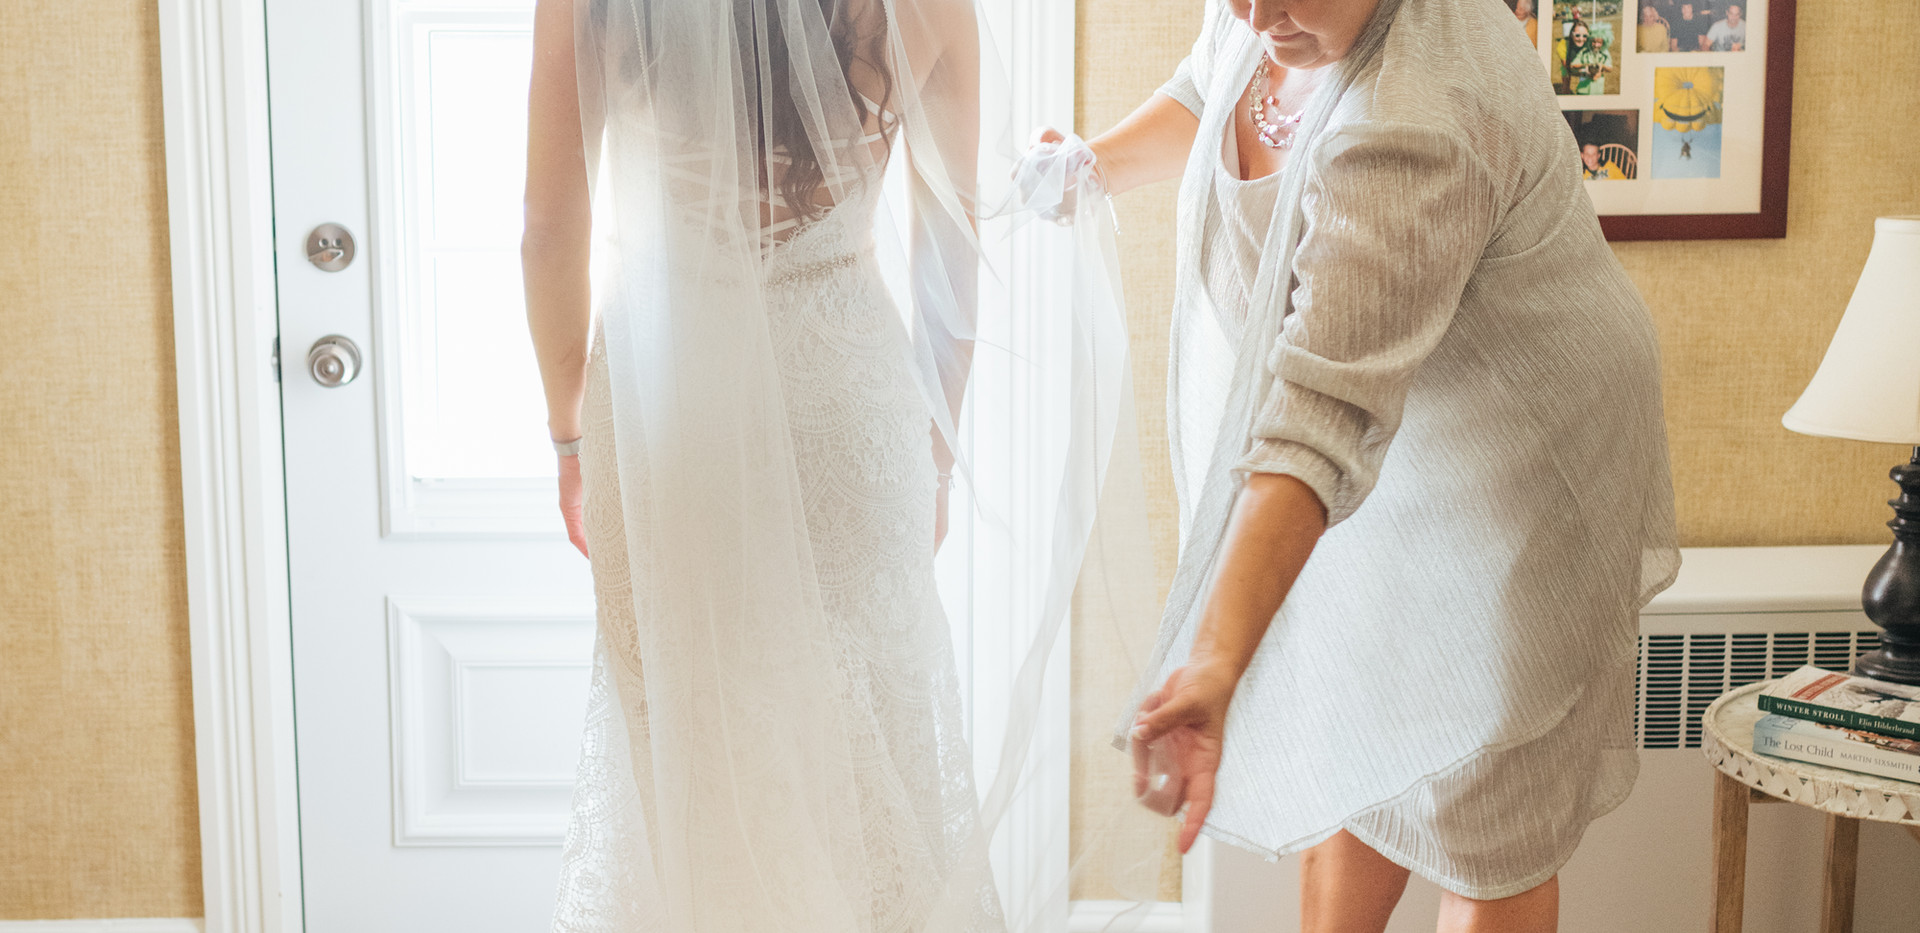 bridal portrait from back with mother adjusting veil over wedding dress